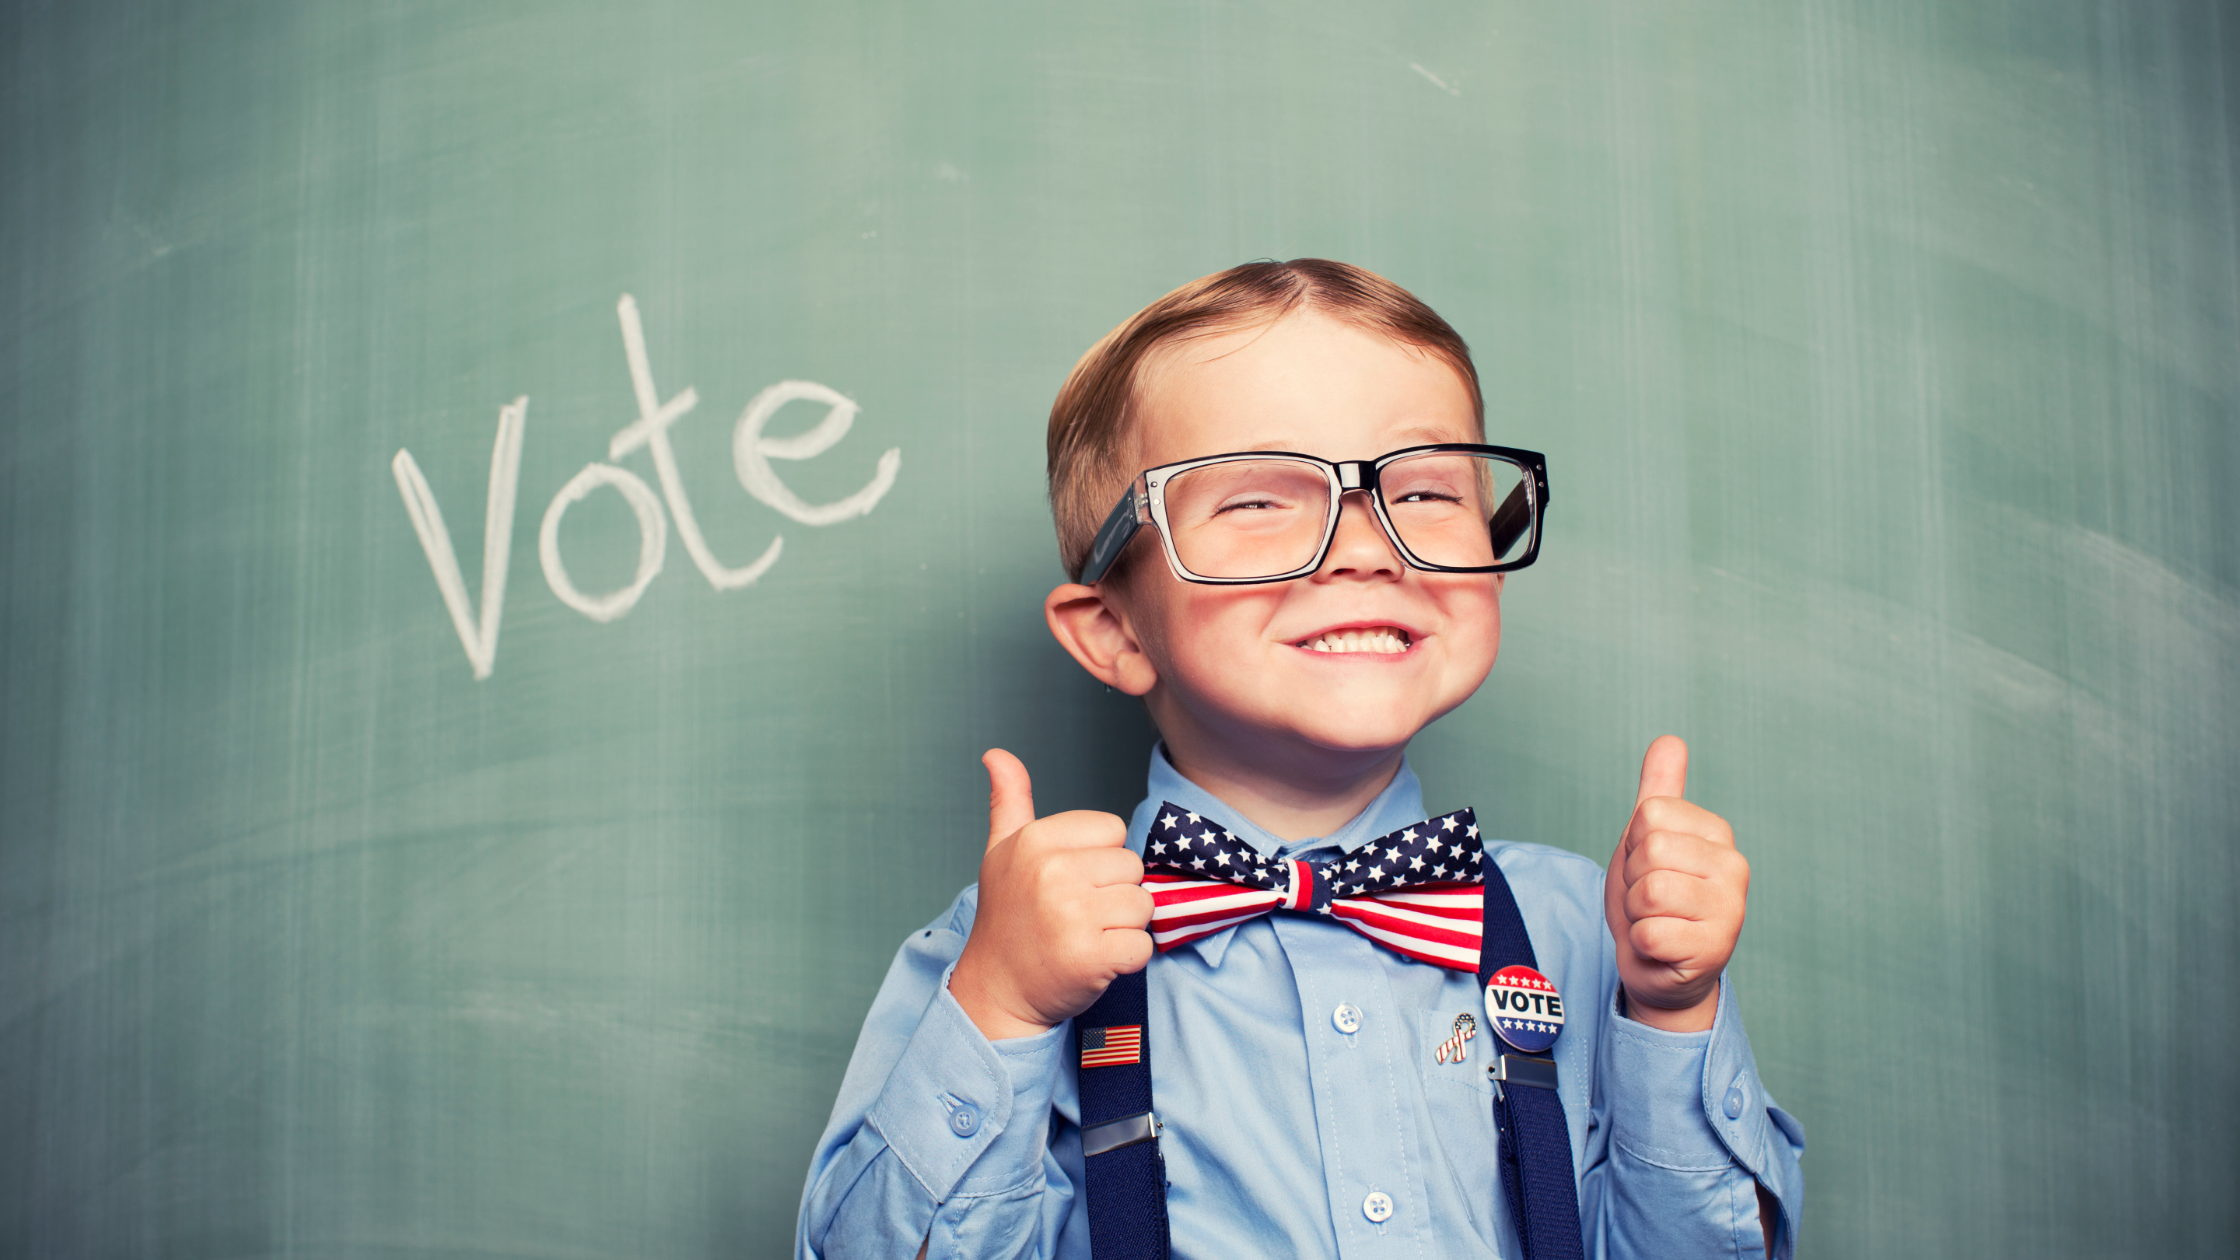 young boy standing in front of a blackboard with the work vote written